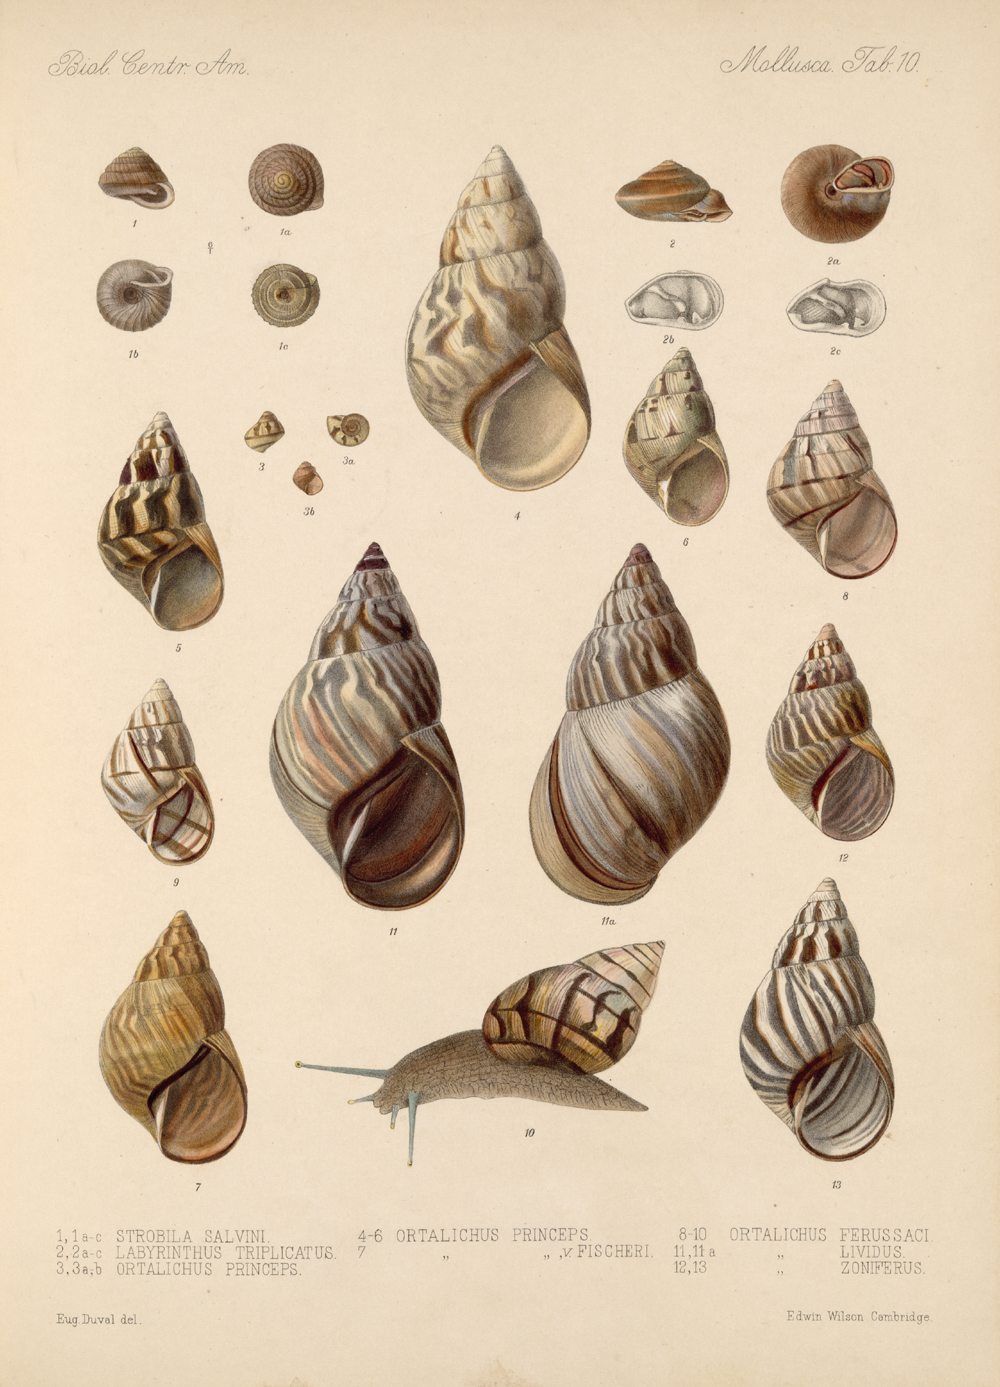 Shells and Mollusks,  Image number:bca_06_00_00_729